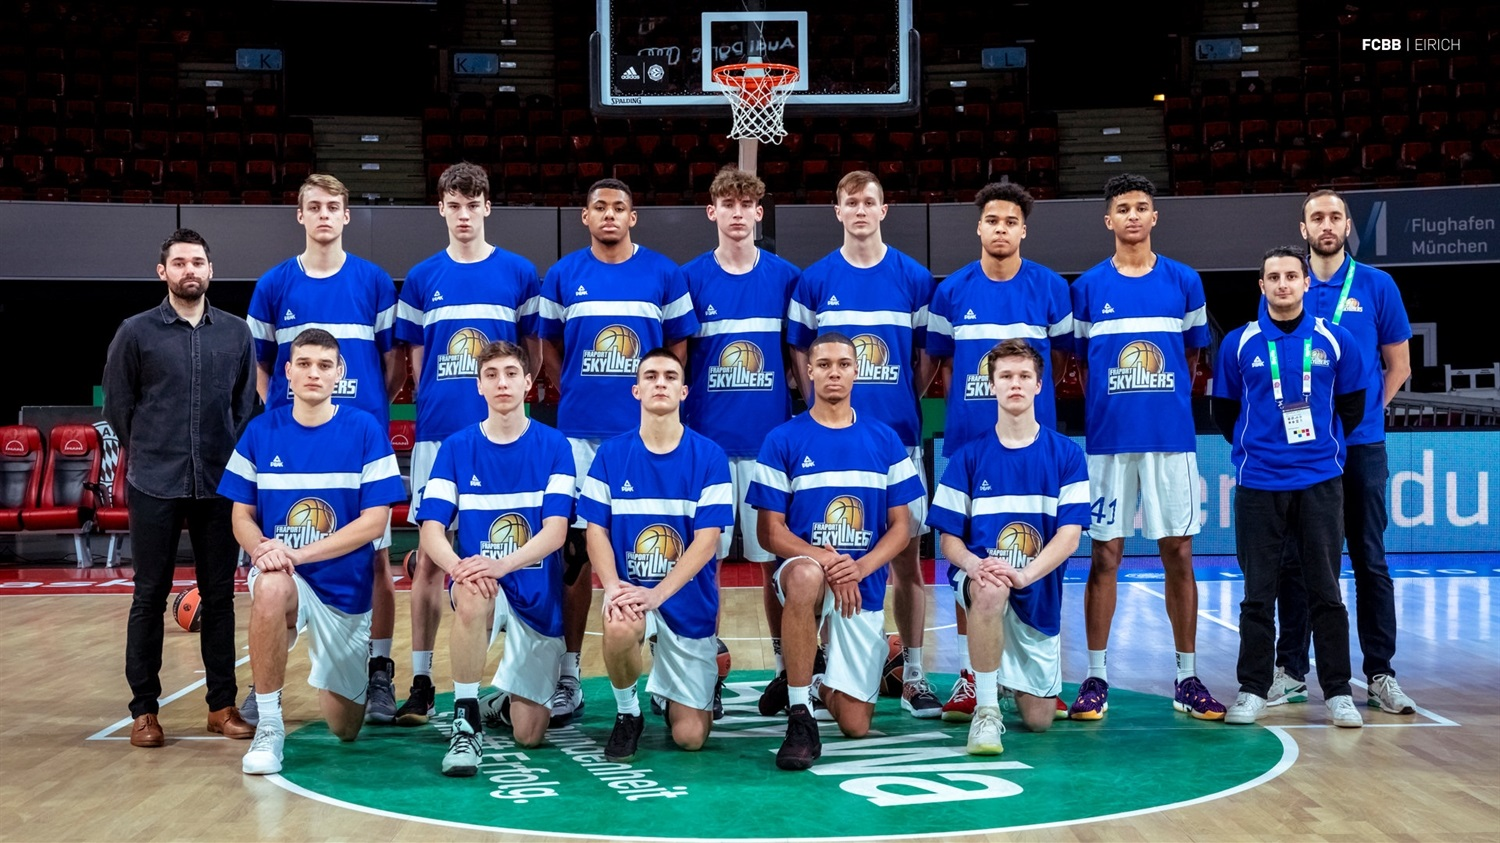 U18 Fraport Skyliners Frankfurt - ANGT Munich 2019 (photo FCBB - Eirich) JT18